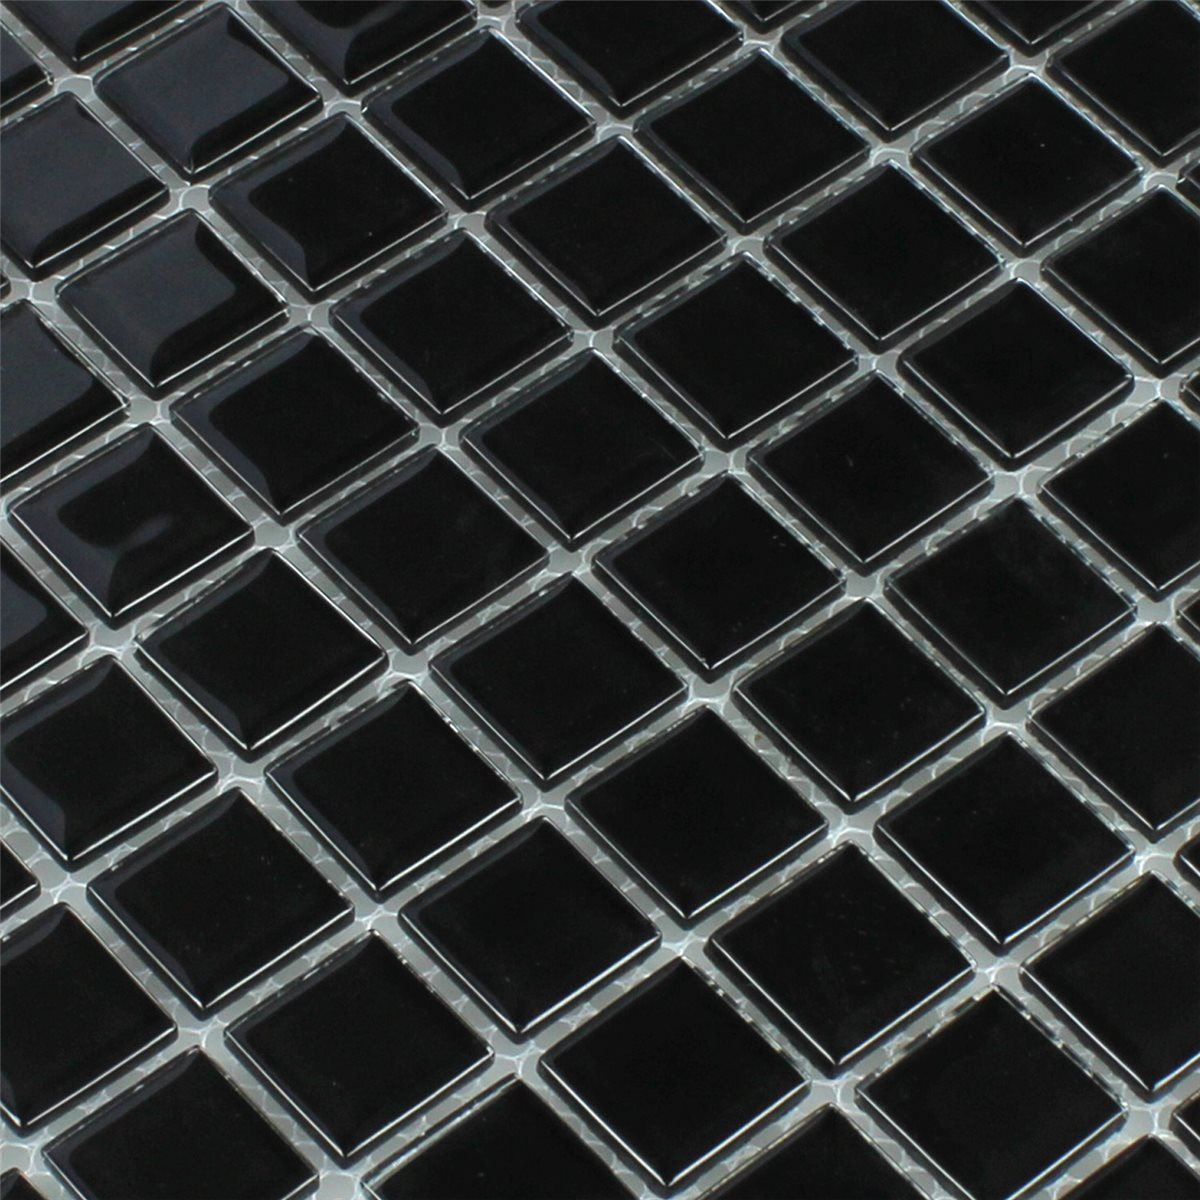 crystal glass mosaic tiles black 25x25x4mm www